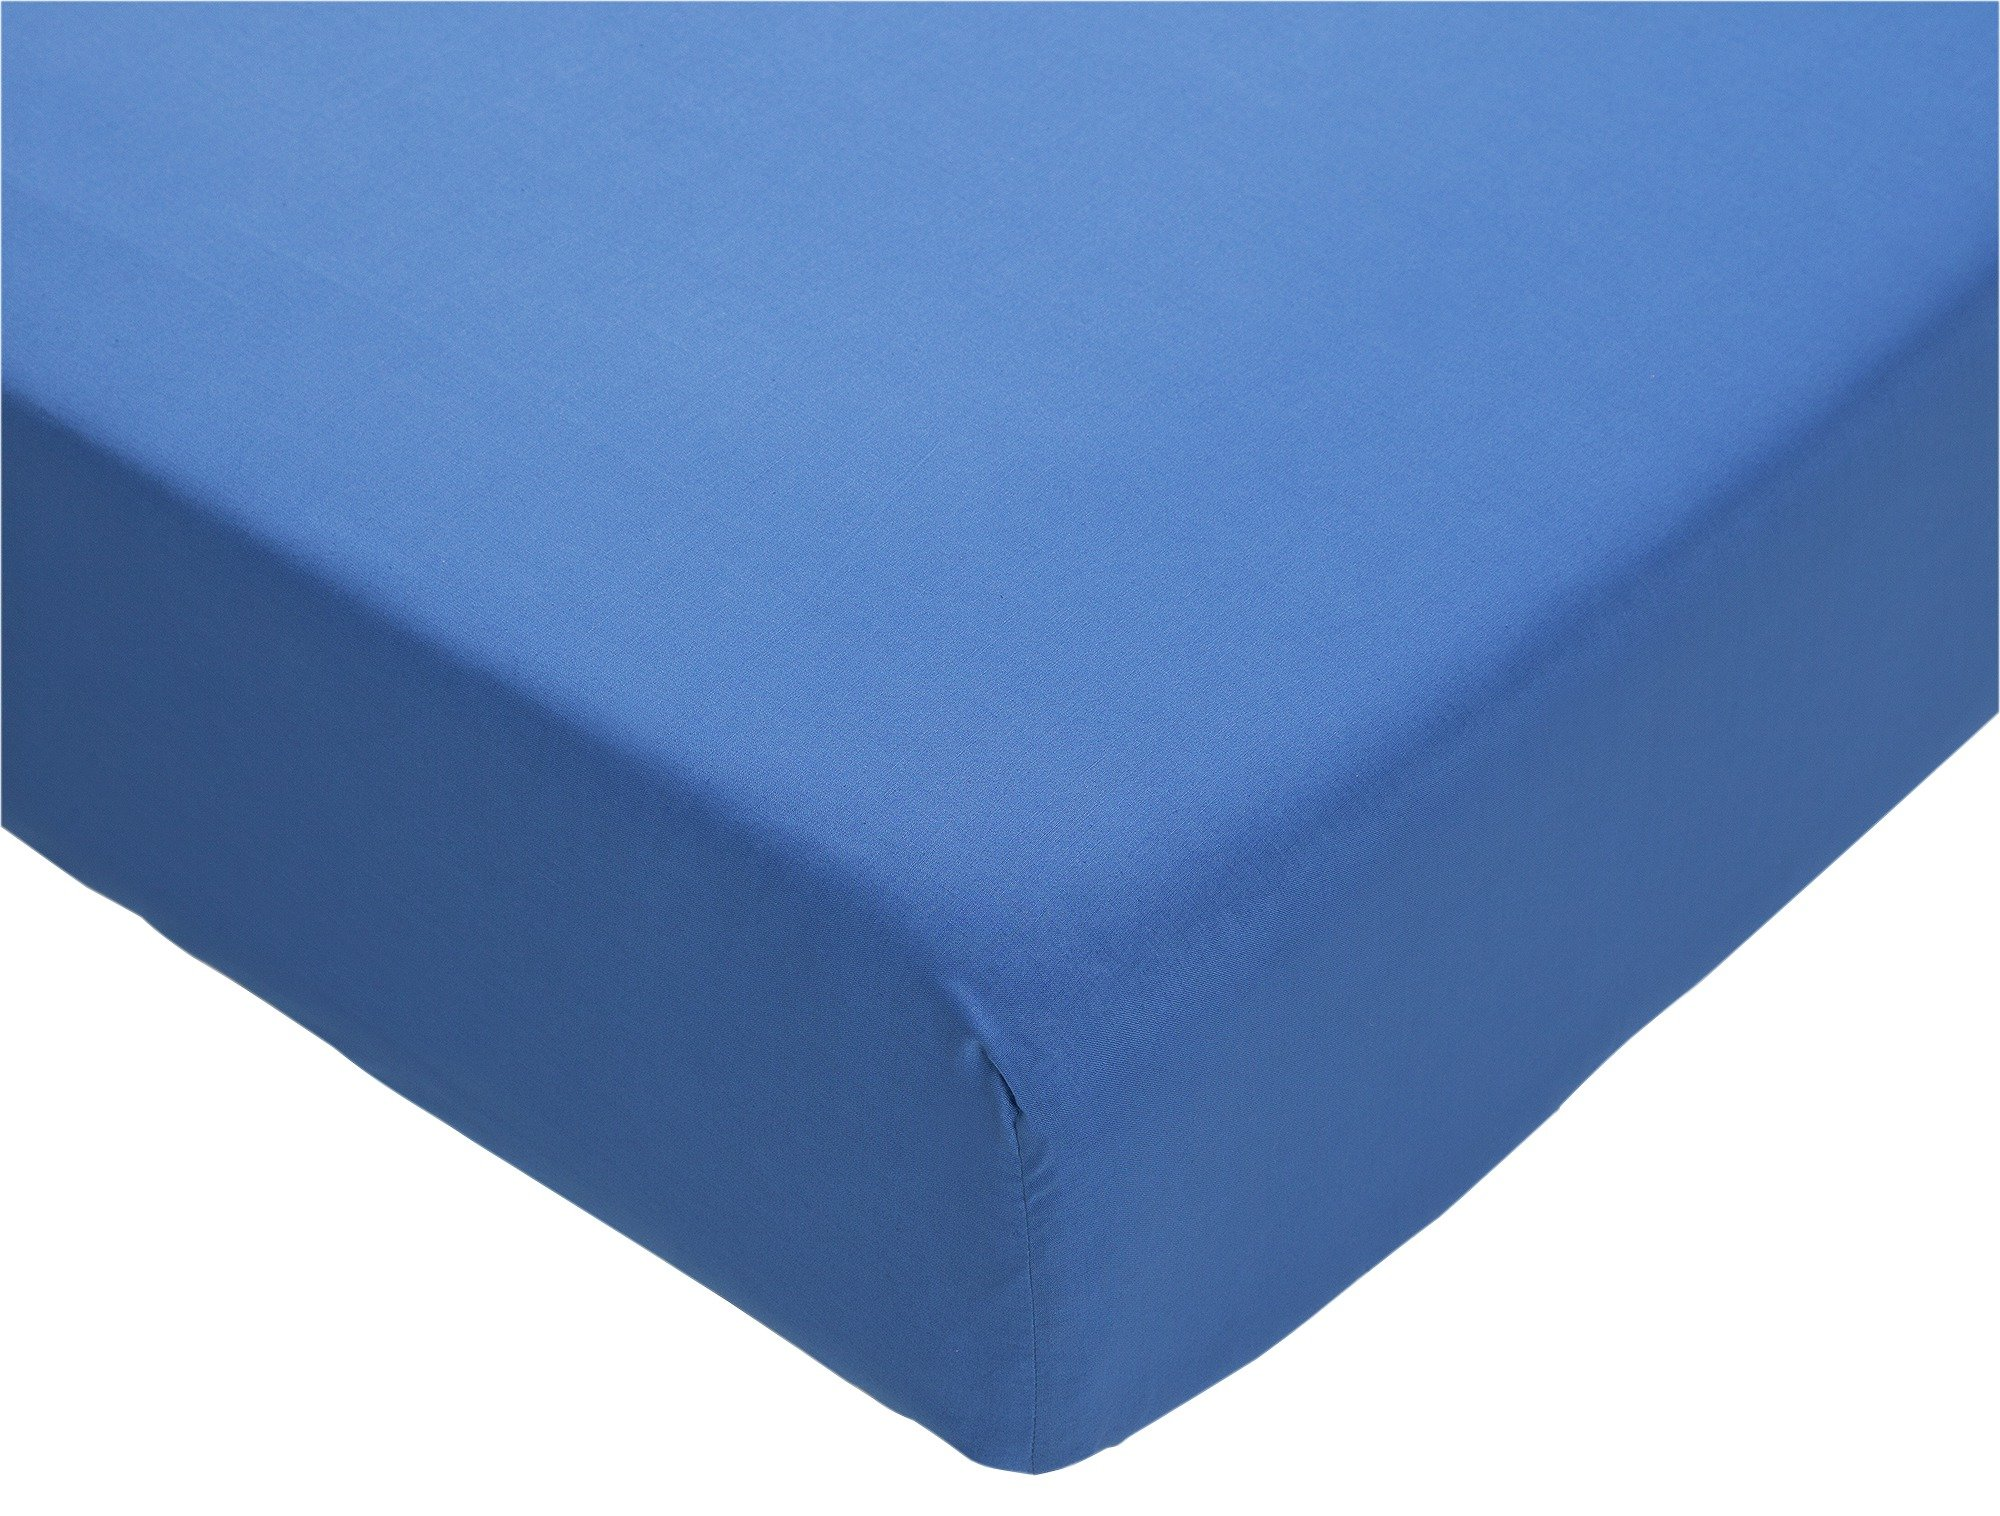 colourmatch ink blue fitted sheet  double